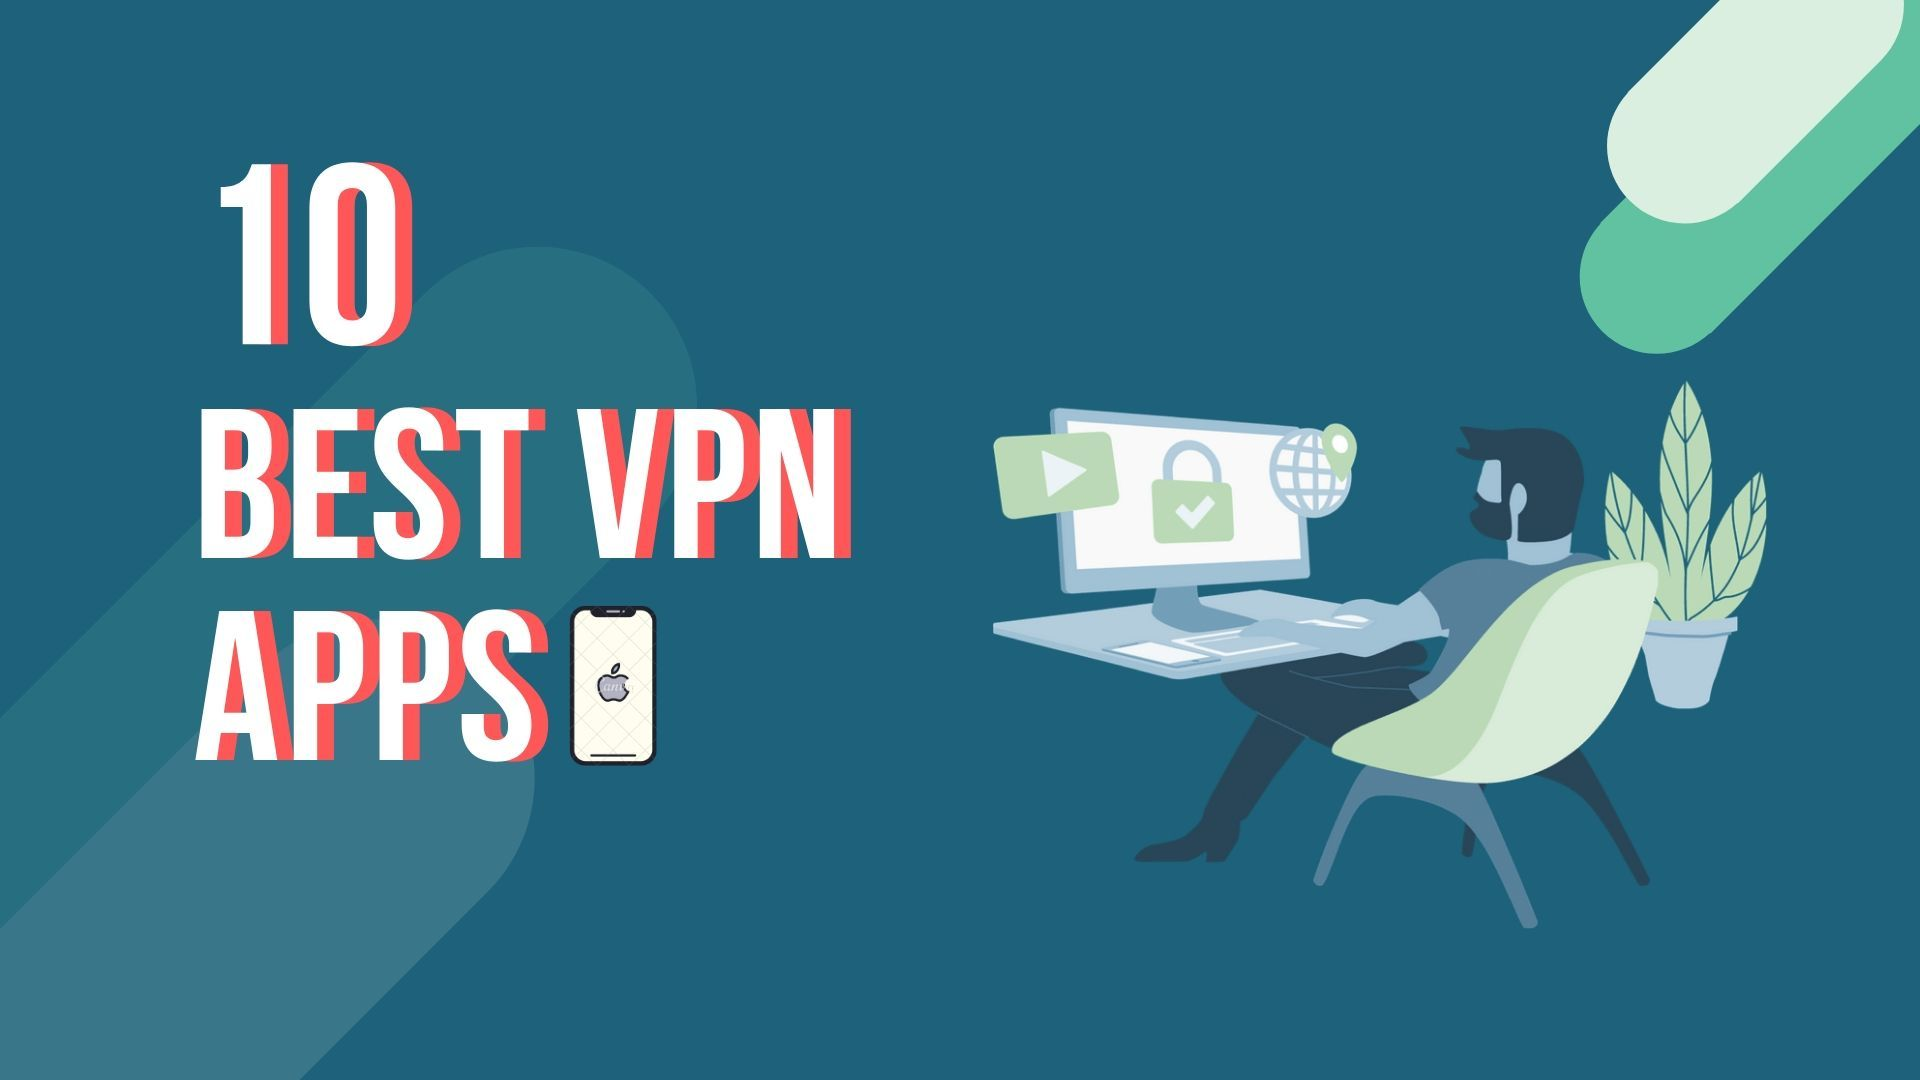 10 Best Free VPN Apps for iPhone Safe and Secure in 2020